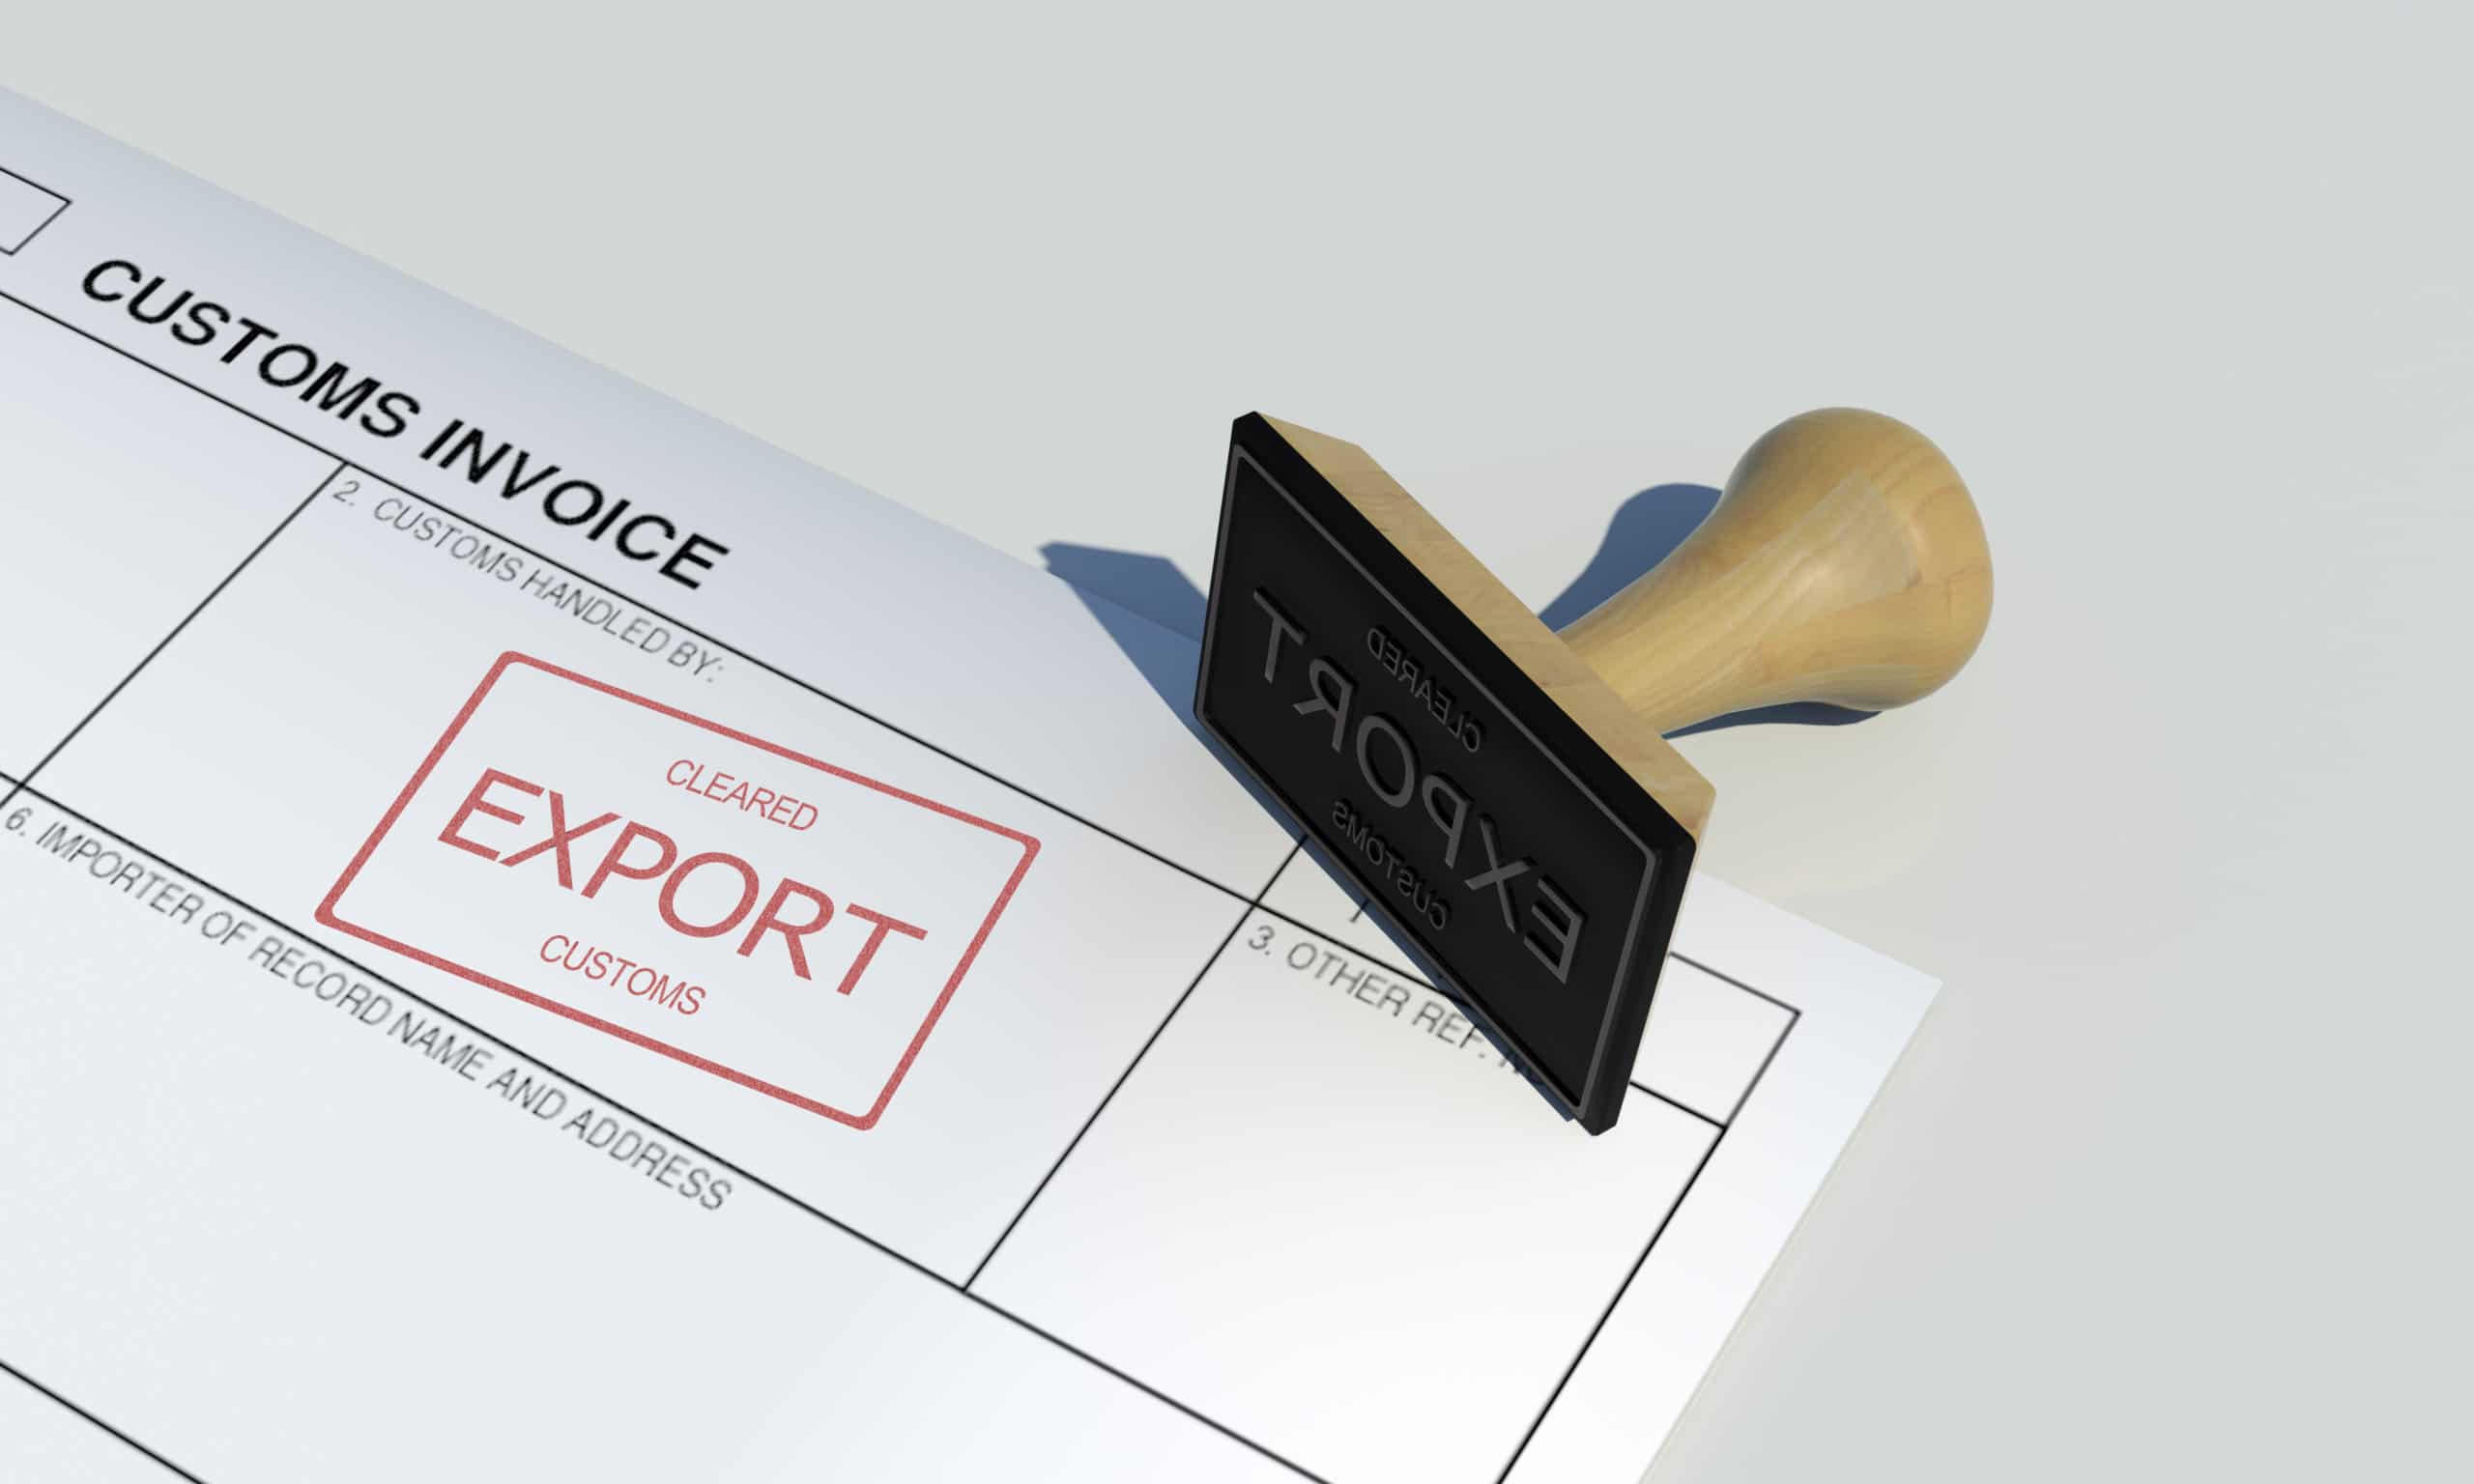 Export cleared approval stamp of customs clearance border control service on customs invoice paper with wooden stamper isolated on table surface government border protection wide scene background